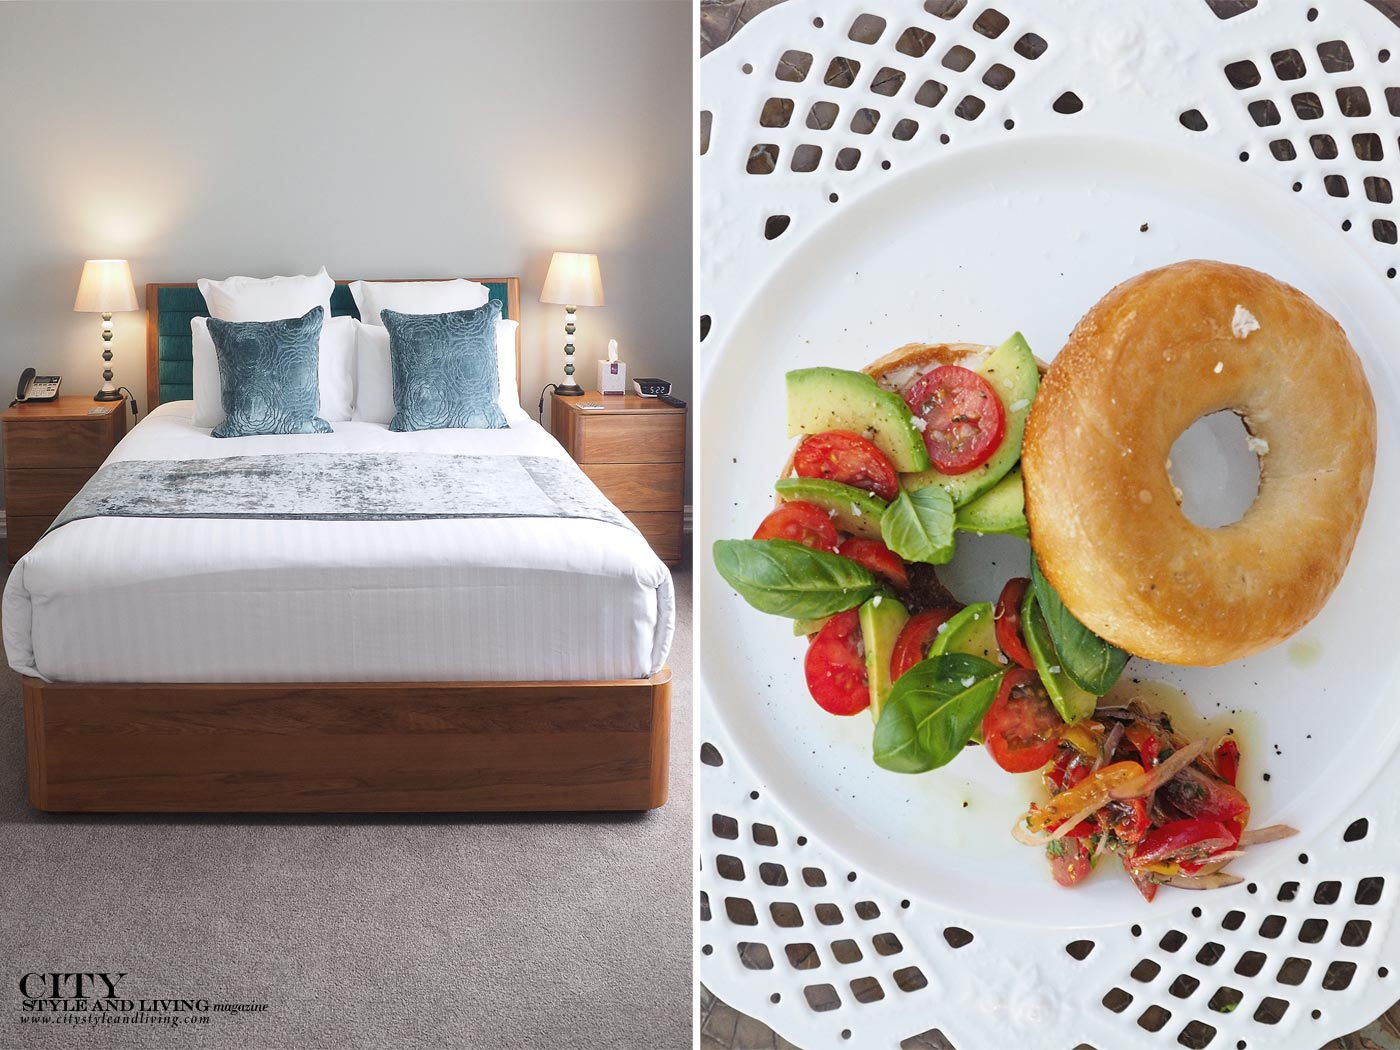 City Style and Living Magazine Mangapapa Hotel Napier New Zealand North Island inside hotel room, breakfast bagel